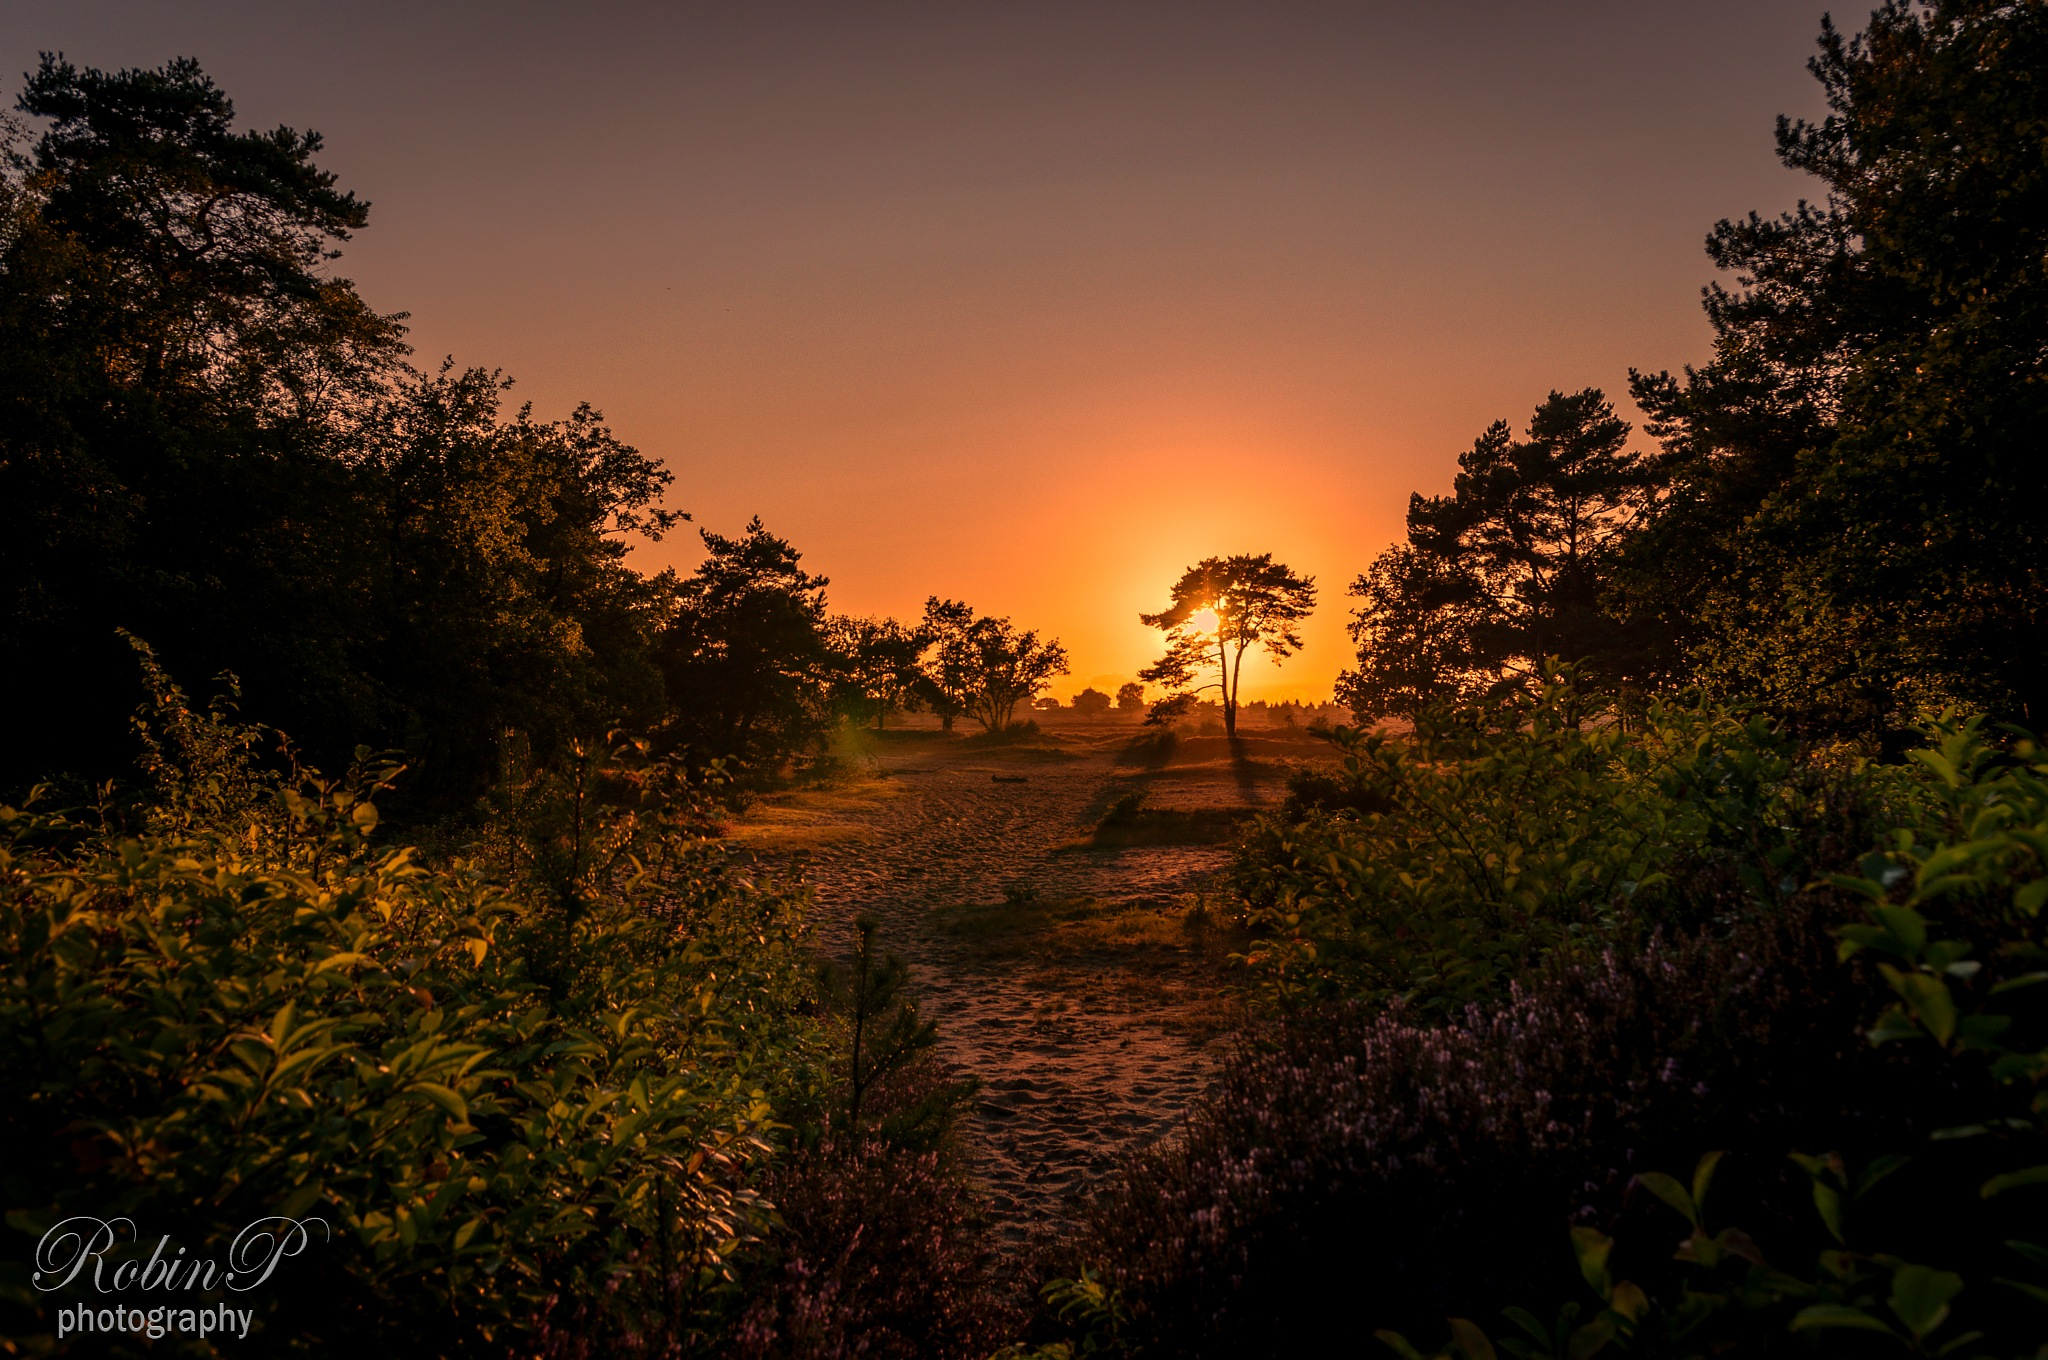 Another sunset by Robin Pulles